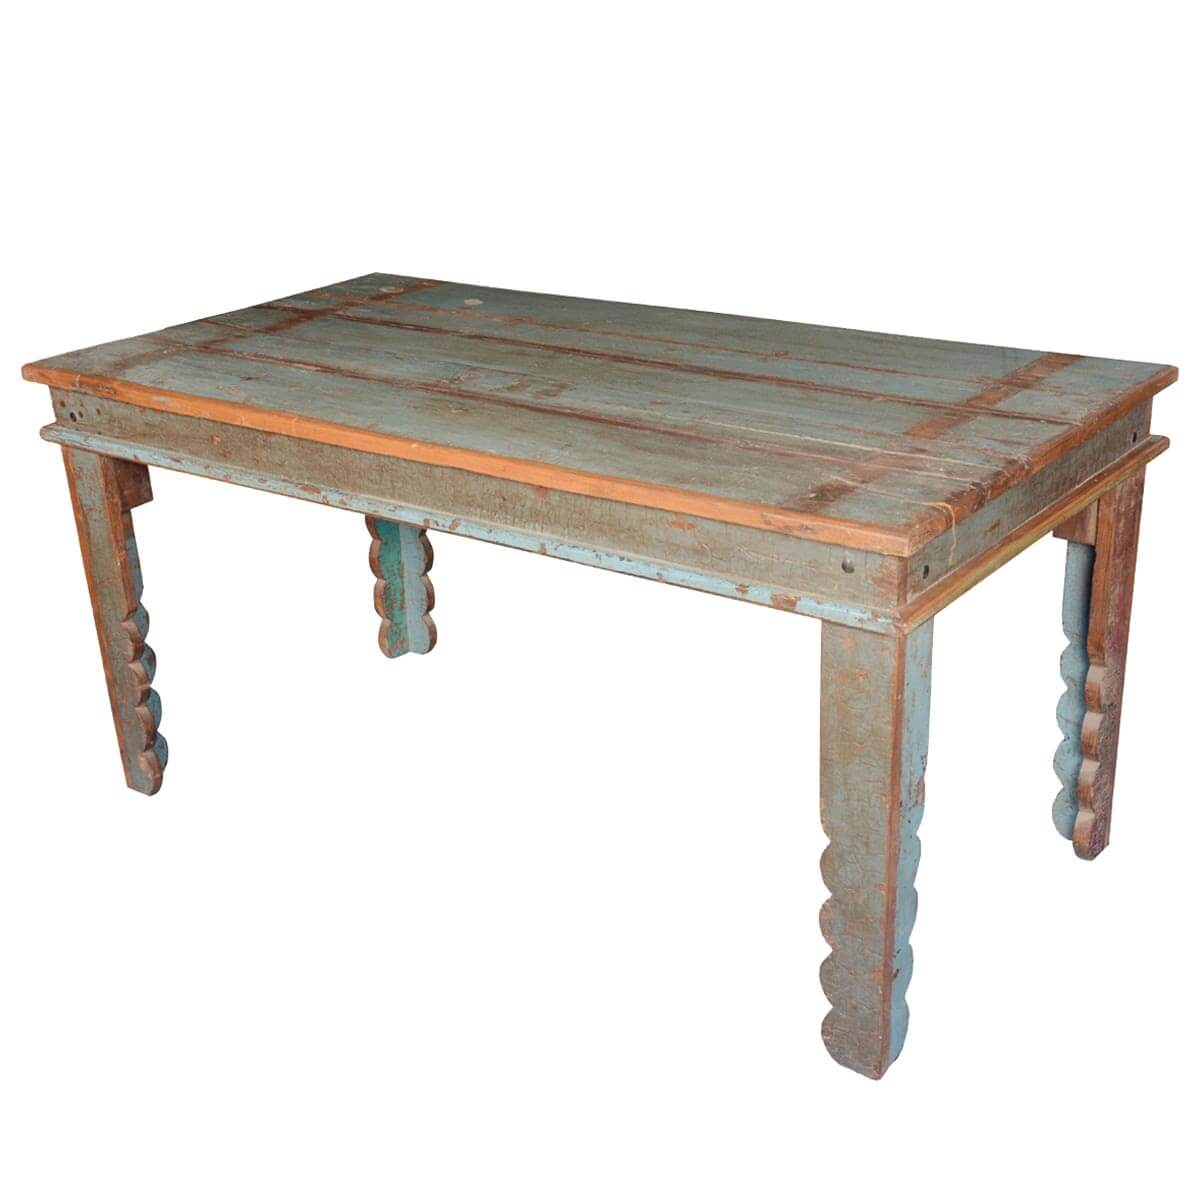 Appalachian Rustic Distressed Reclaimed Wood Pastel Kitchen Table